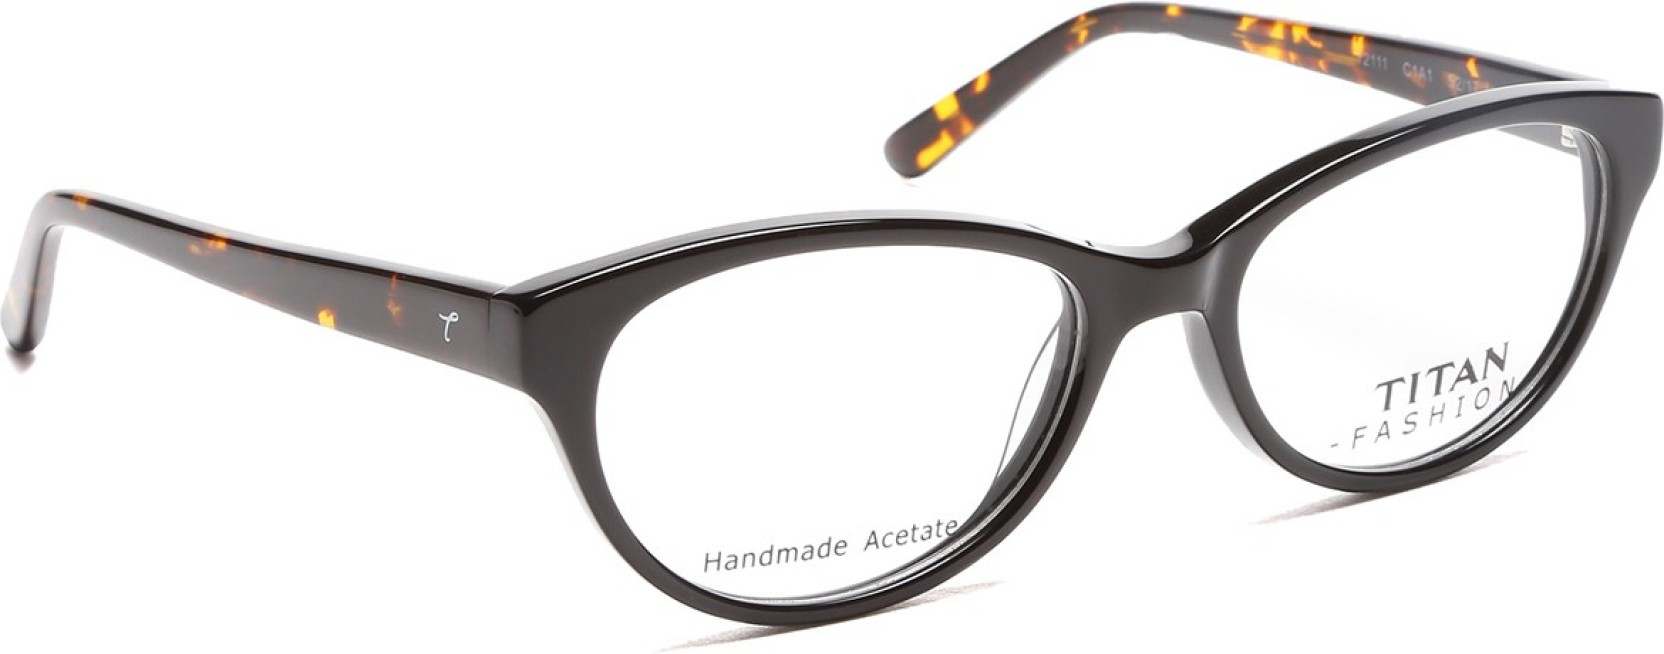 f19b65e8b6 Titan Full Rim Cat-eyed Frame Price in India - Buy Titan Full Rim ...